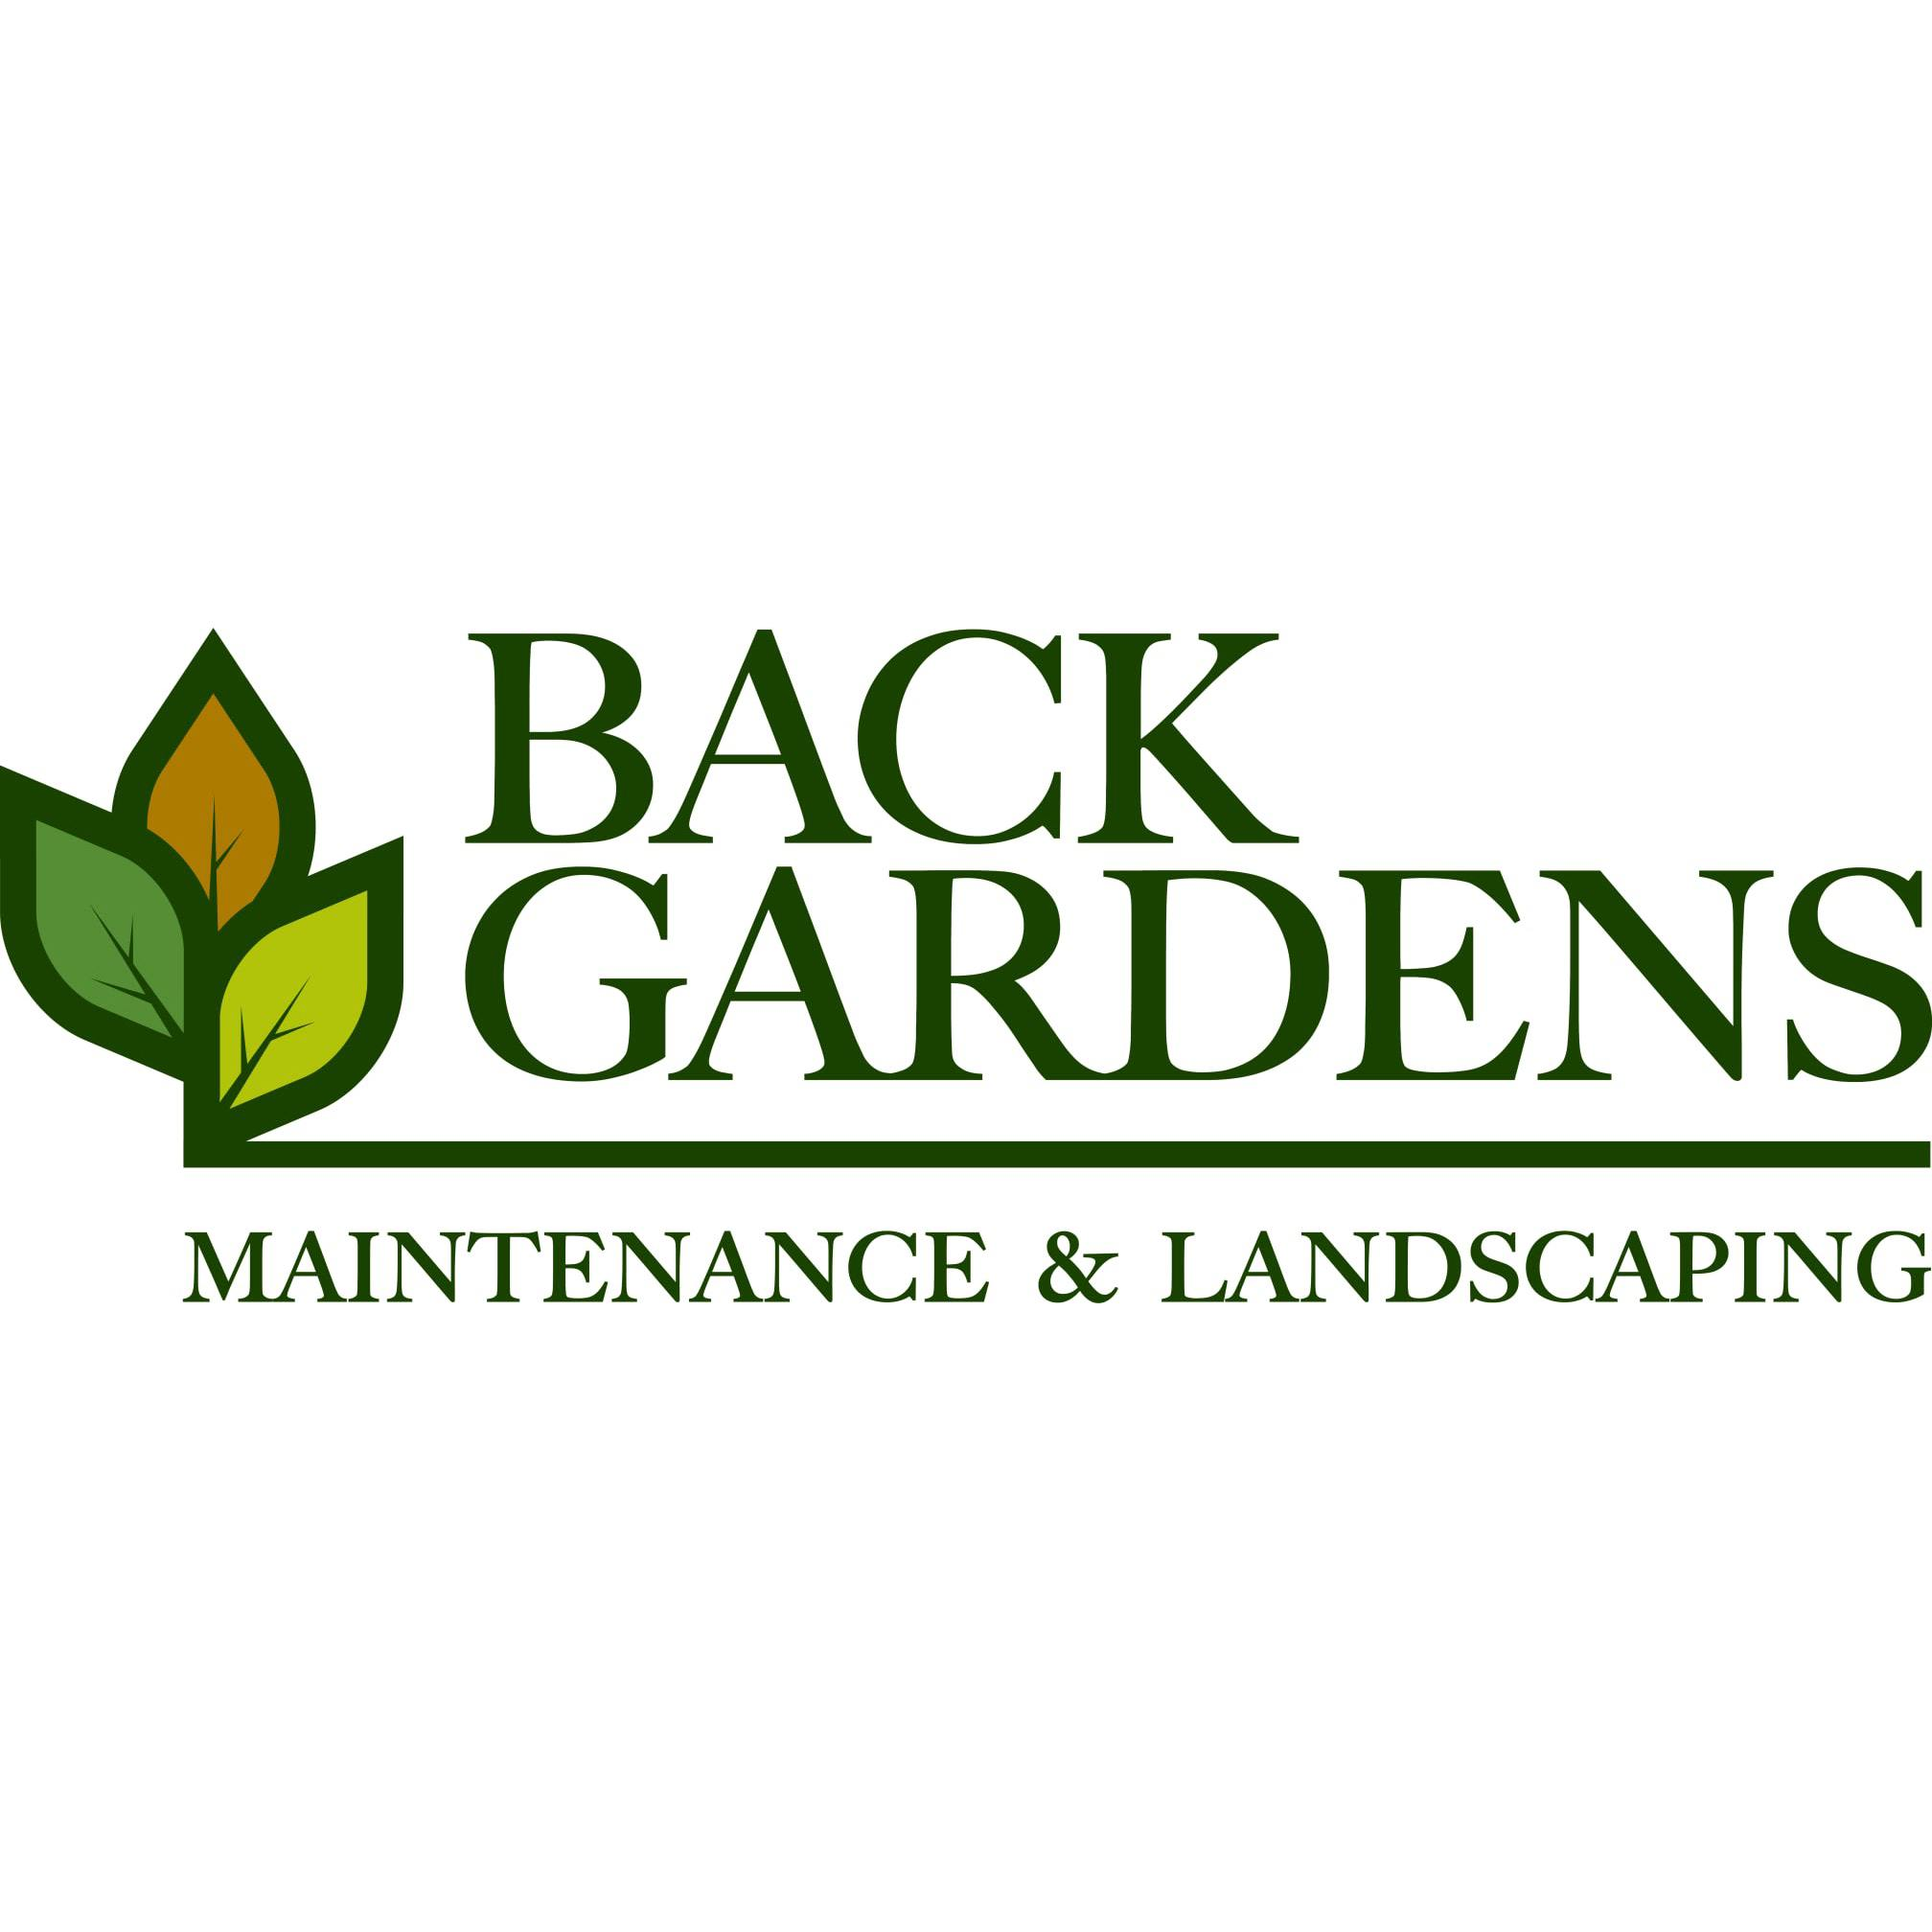 Back Gardens Ltd - Leicester, Leicestershire LE7 2LF - 07719 920230 | ShowMeLocal.com